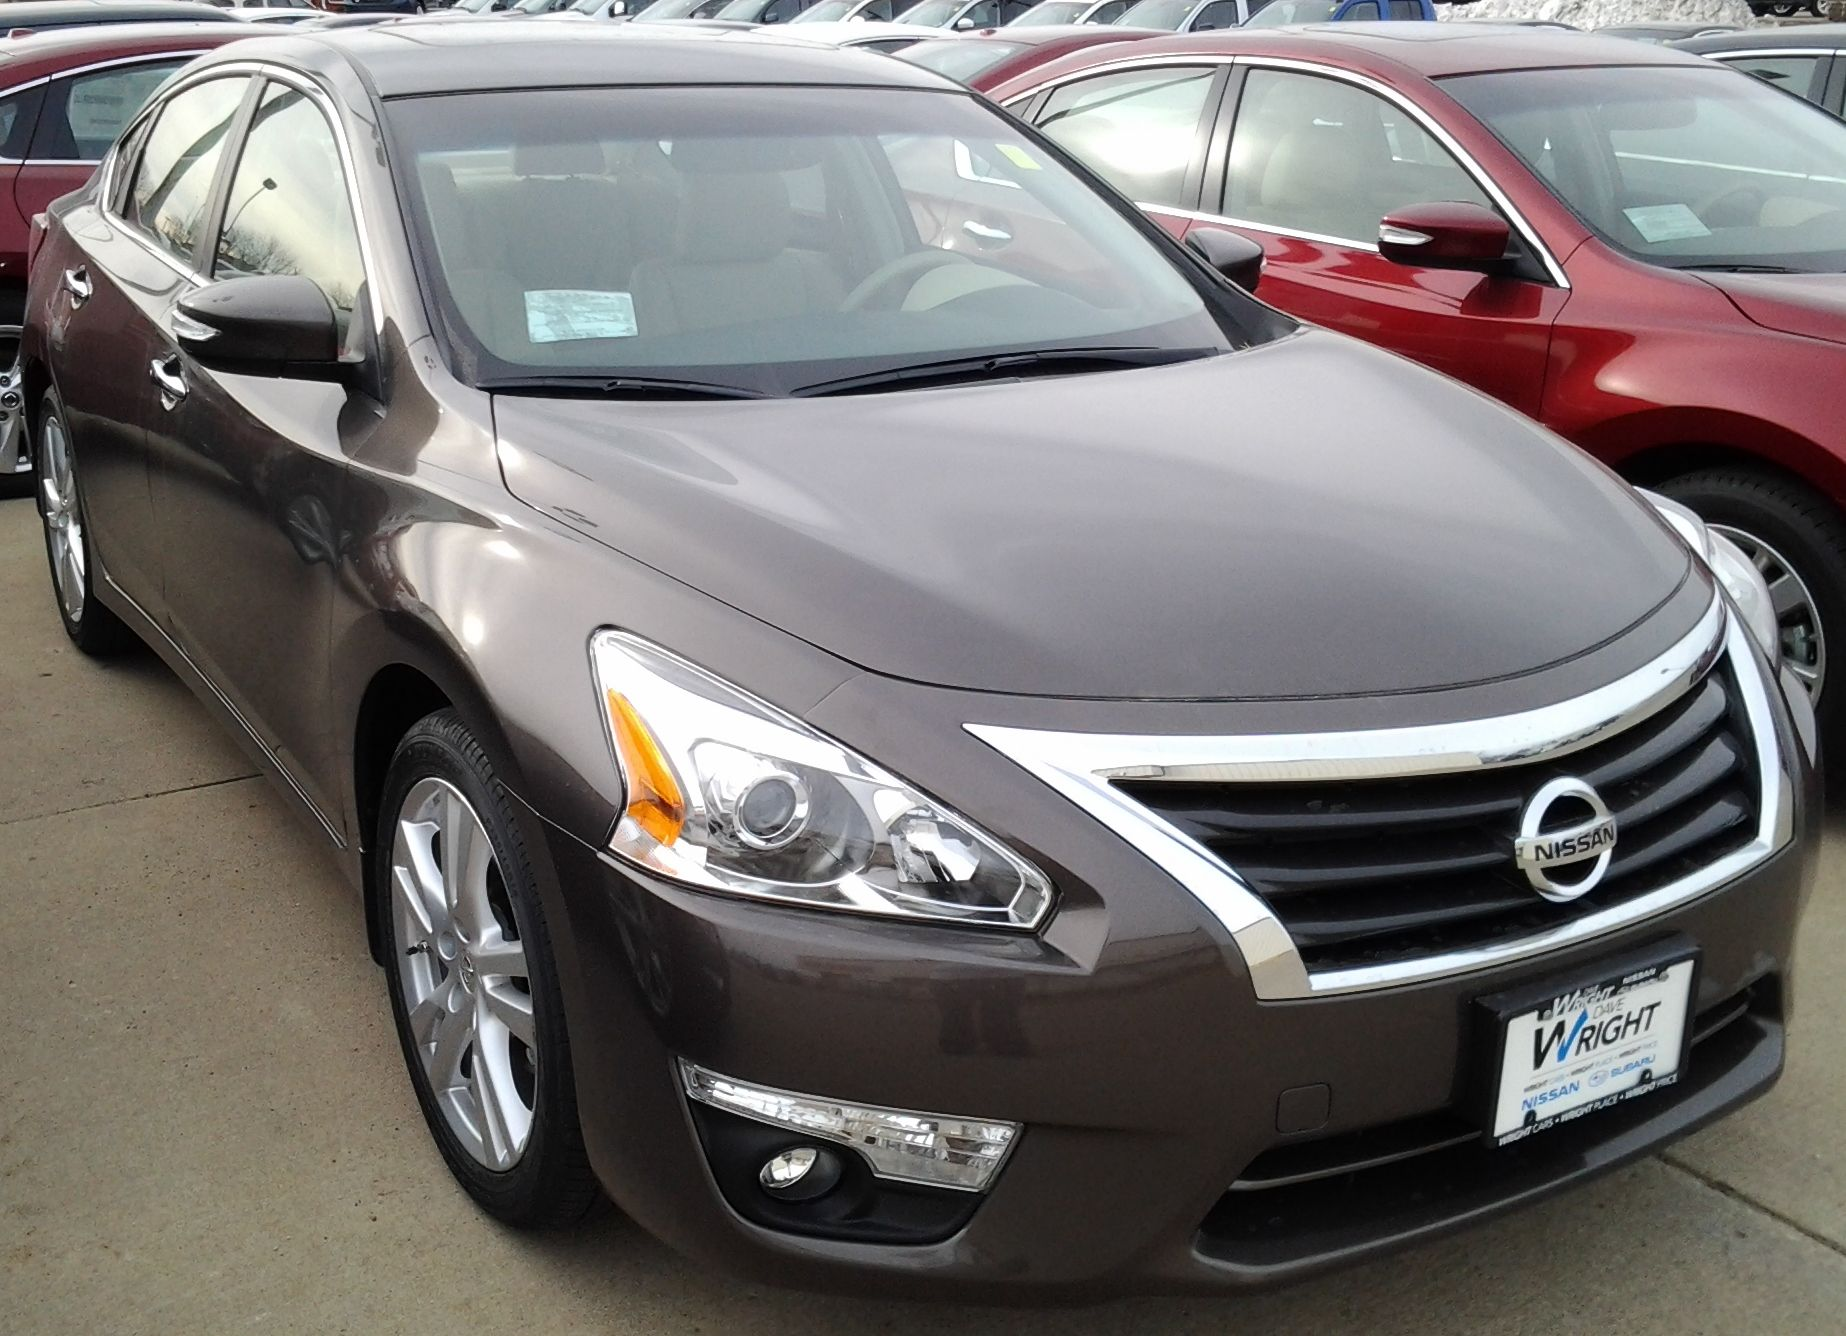 nissan altima difference between 2014 and 2015 models autos post. Black Bedroom Furniture Sets. Home Design Ideas